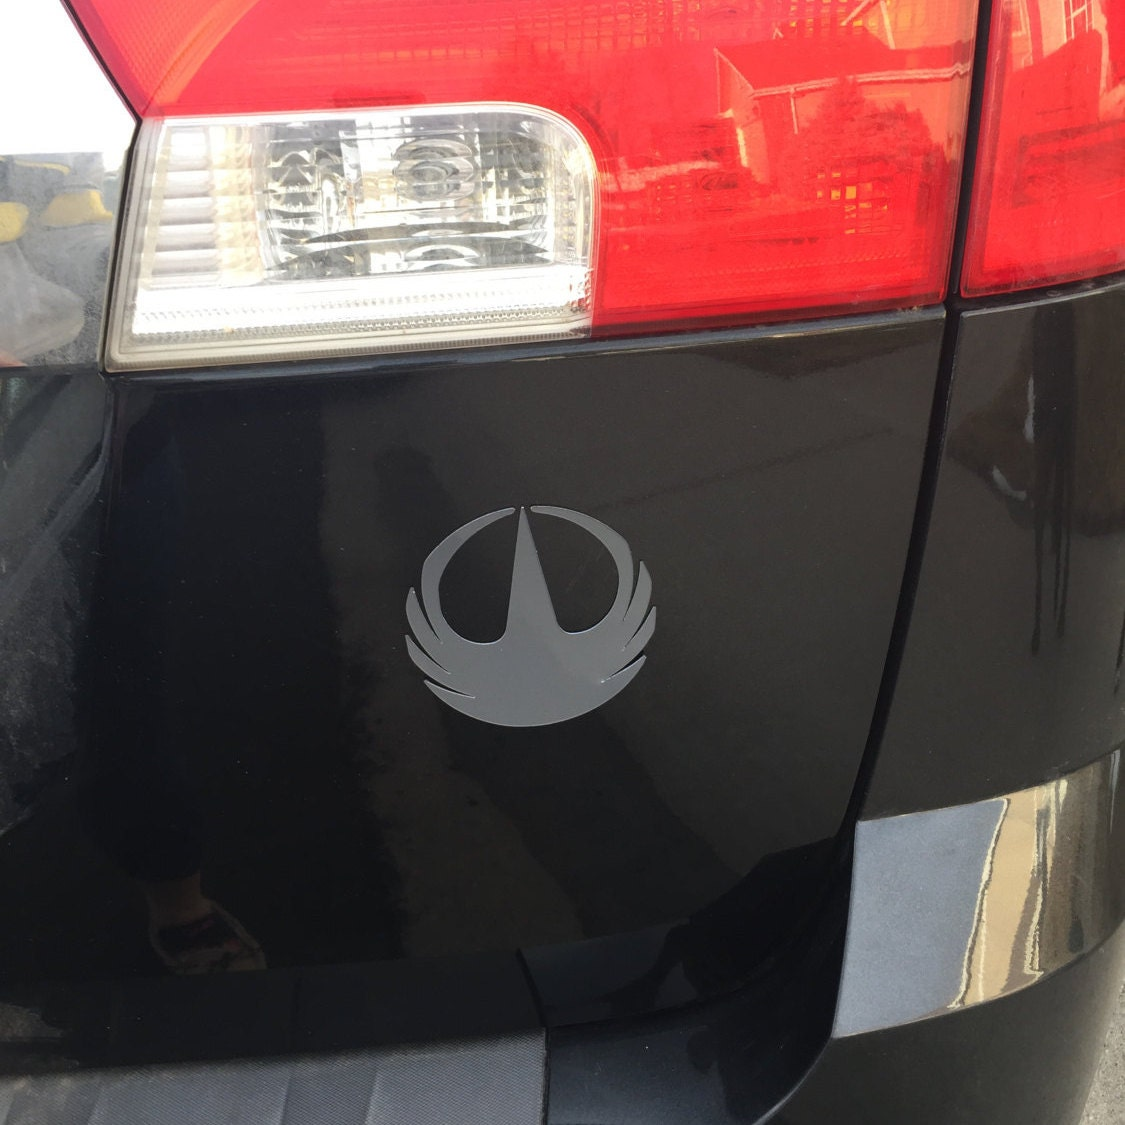 Star Wars Car Magnet Rogue One Decal - Custom car magnets decals